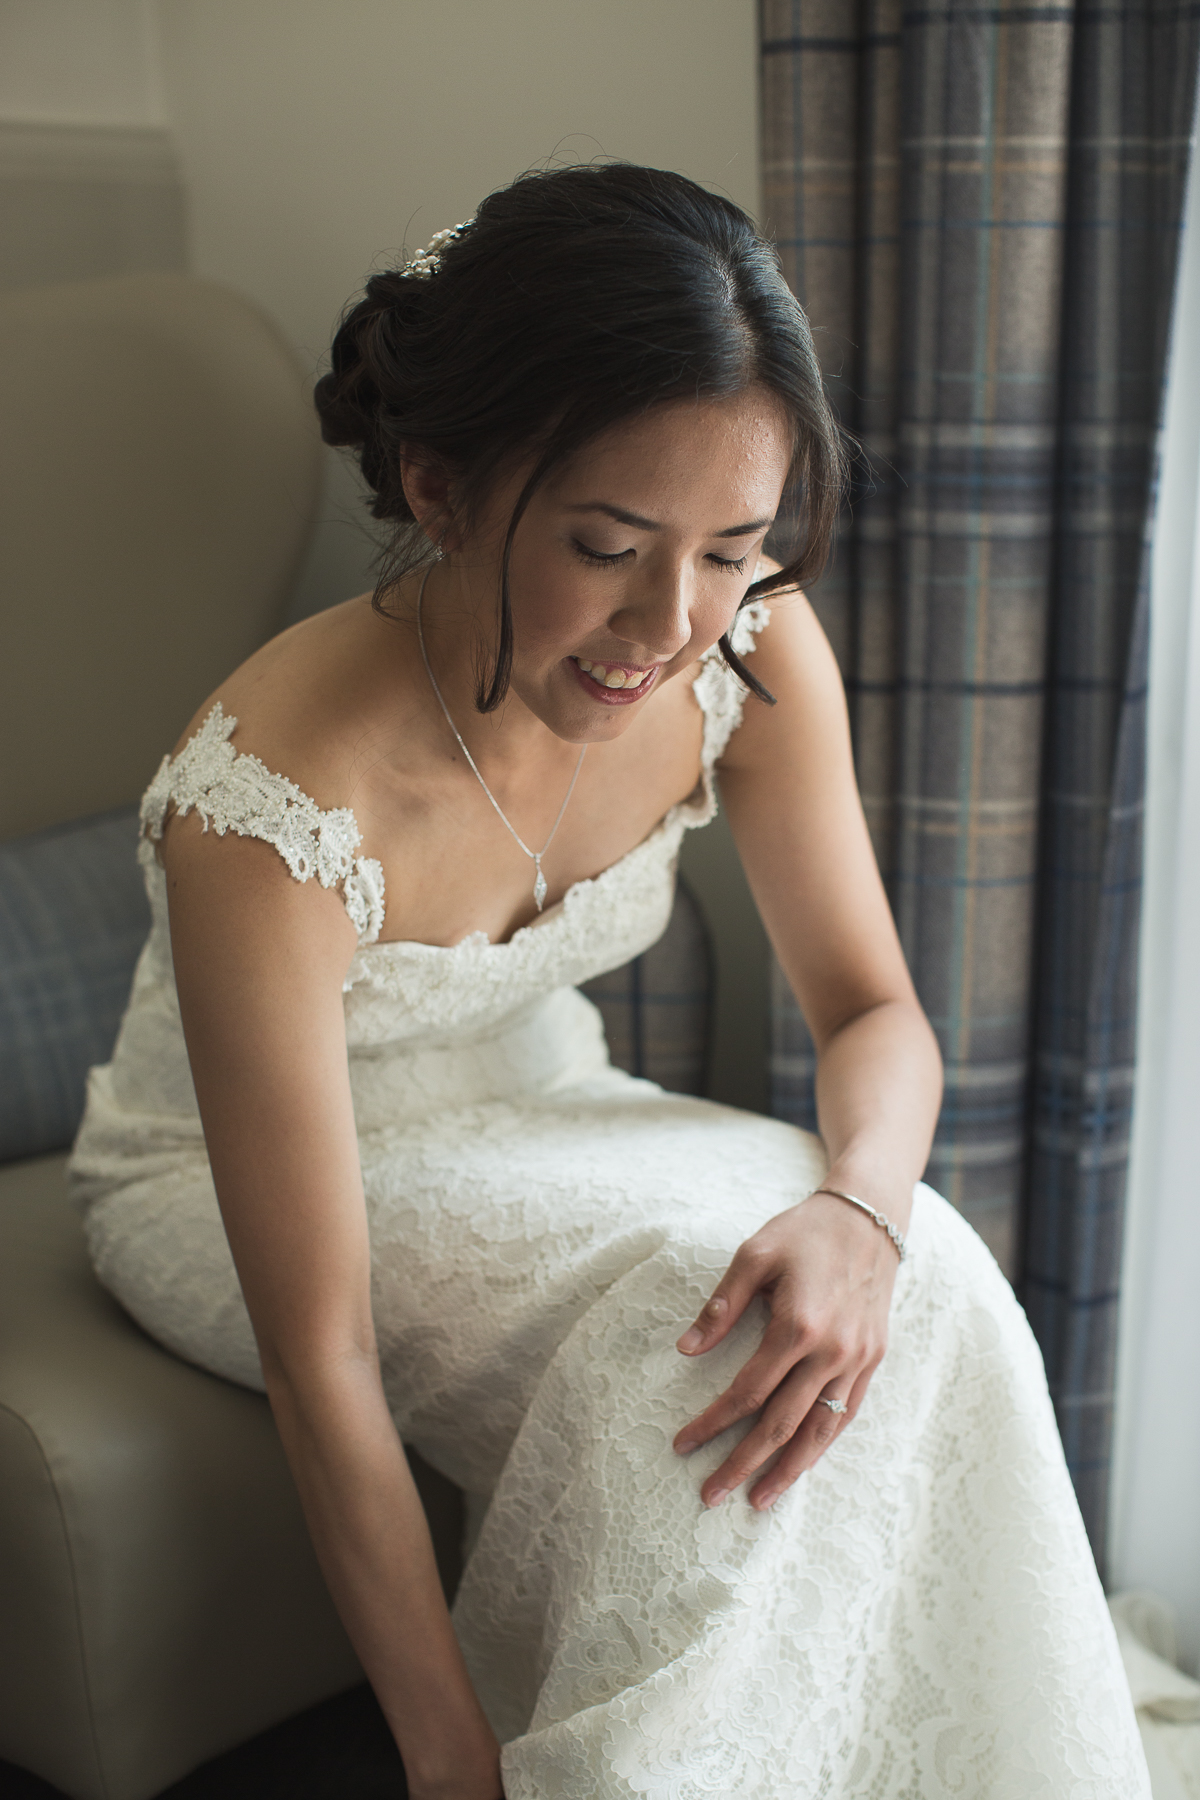 Wedding hair and make-up Surrey